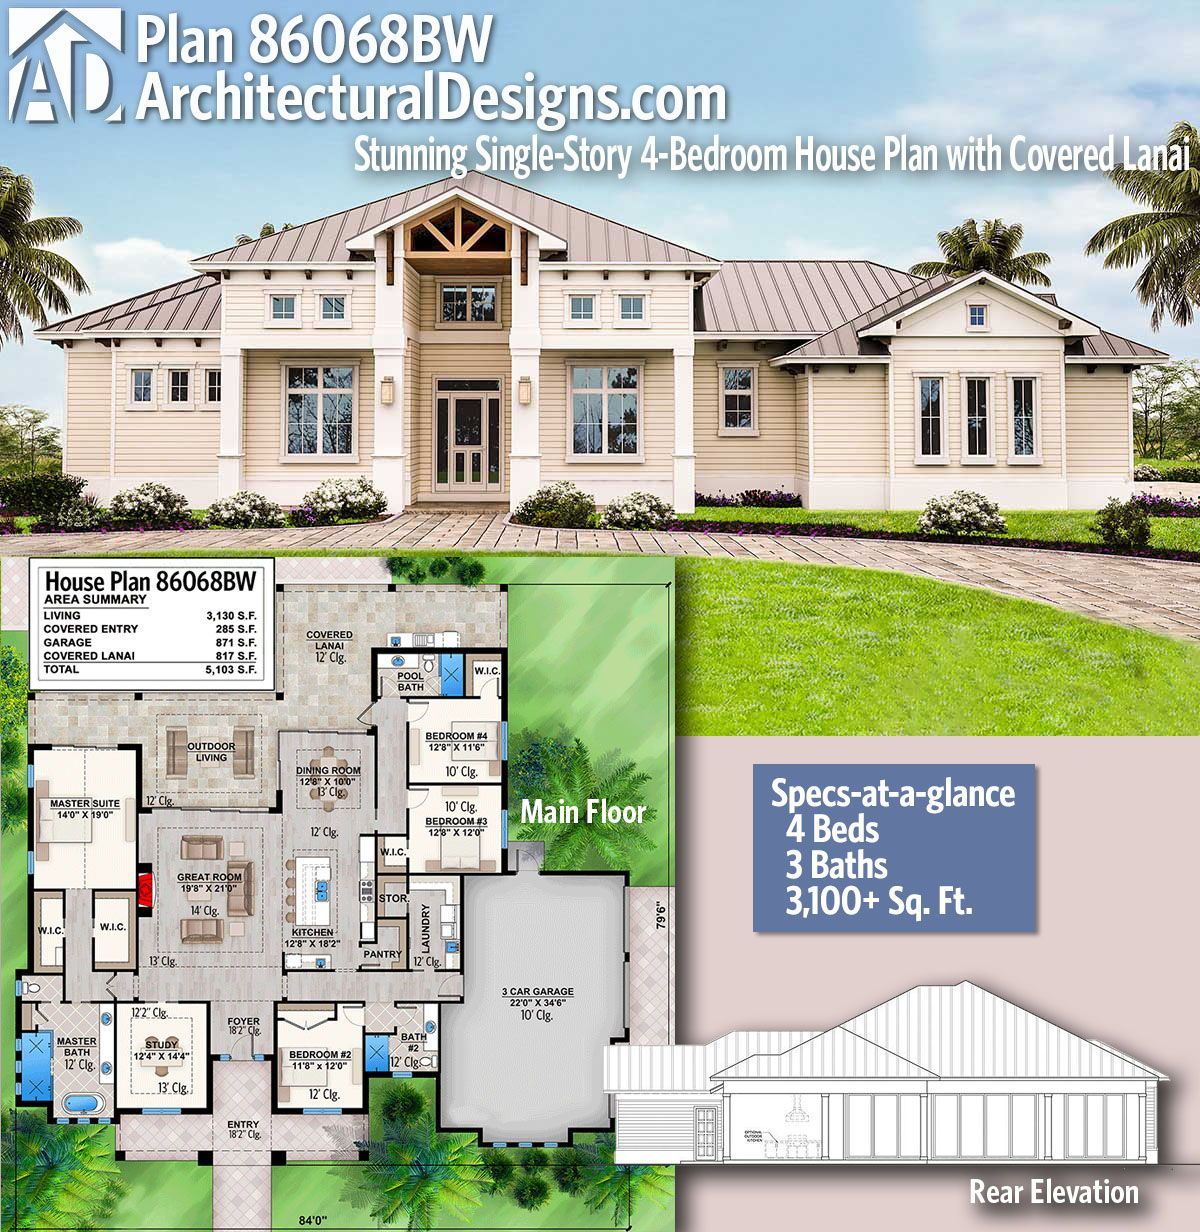 Plan 86068bw Stunning Single Story 4 Bedroom House Plan With Covered Lanai House Plans Florida House Plans House Blueprints